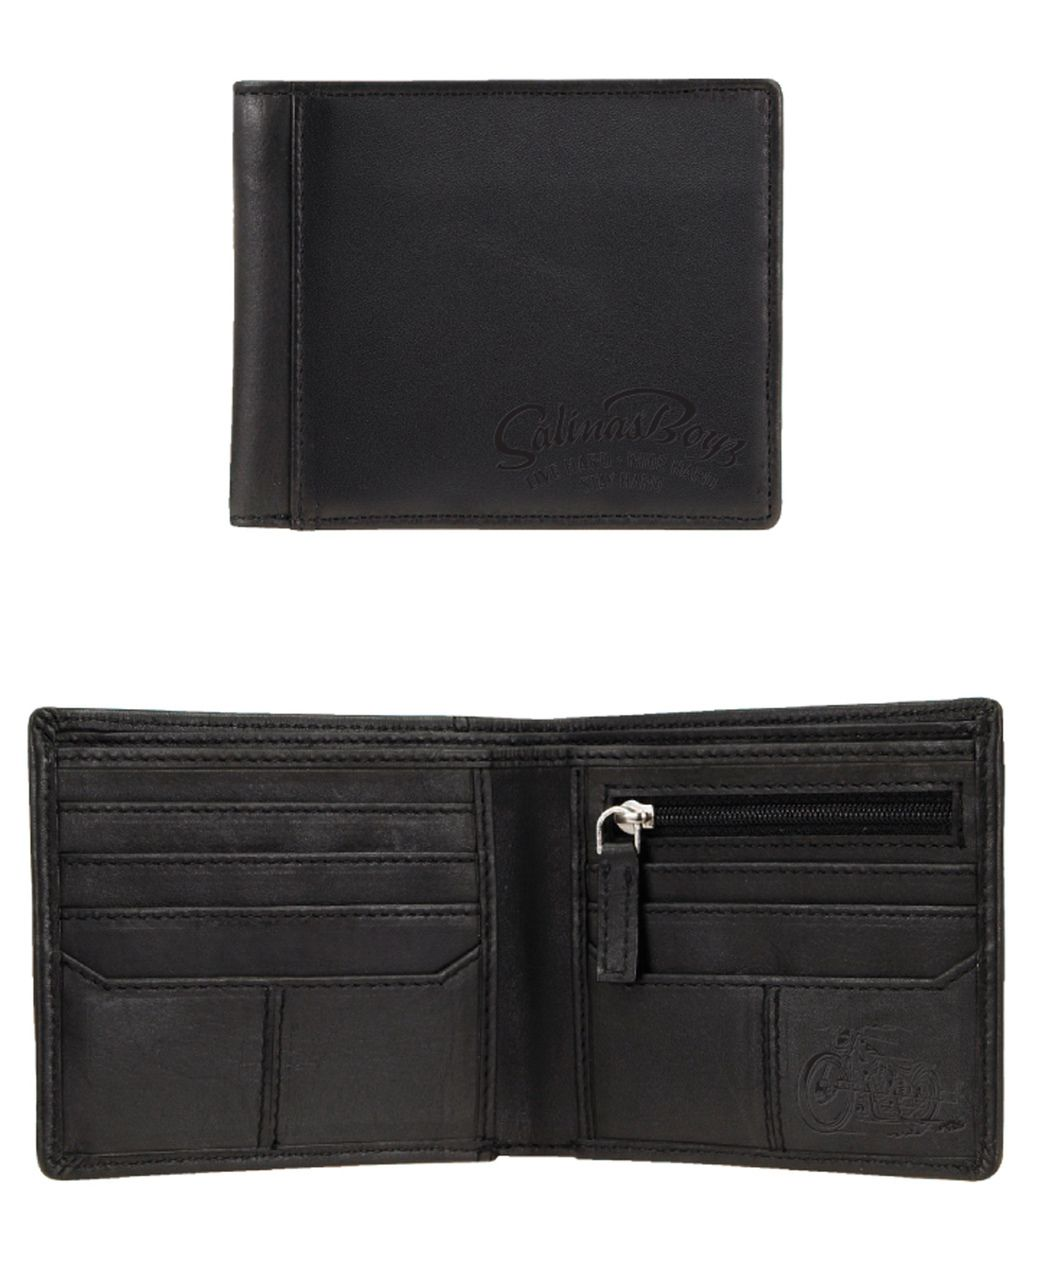 Salinas Boys Leather Wallet Wallet, Leather, Leather wallet